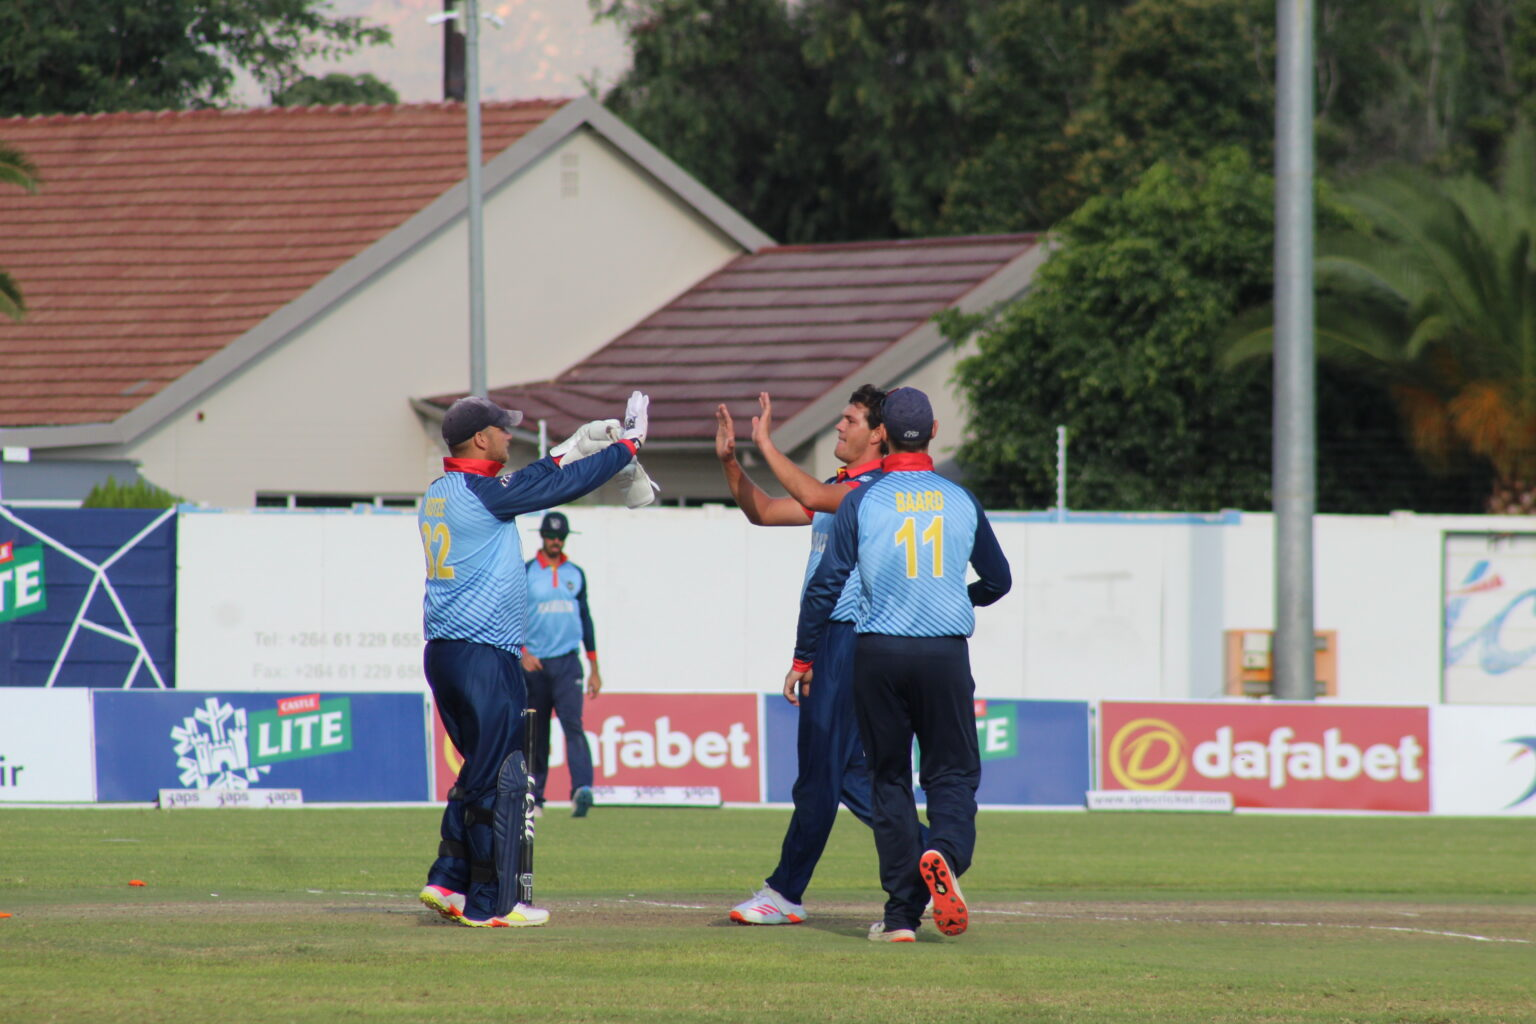 Cricket Namibia Hosts SA Emerging in Castle Lite Series